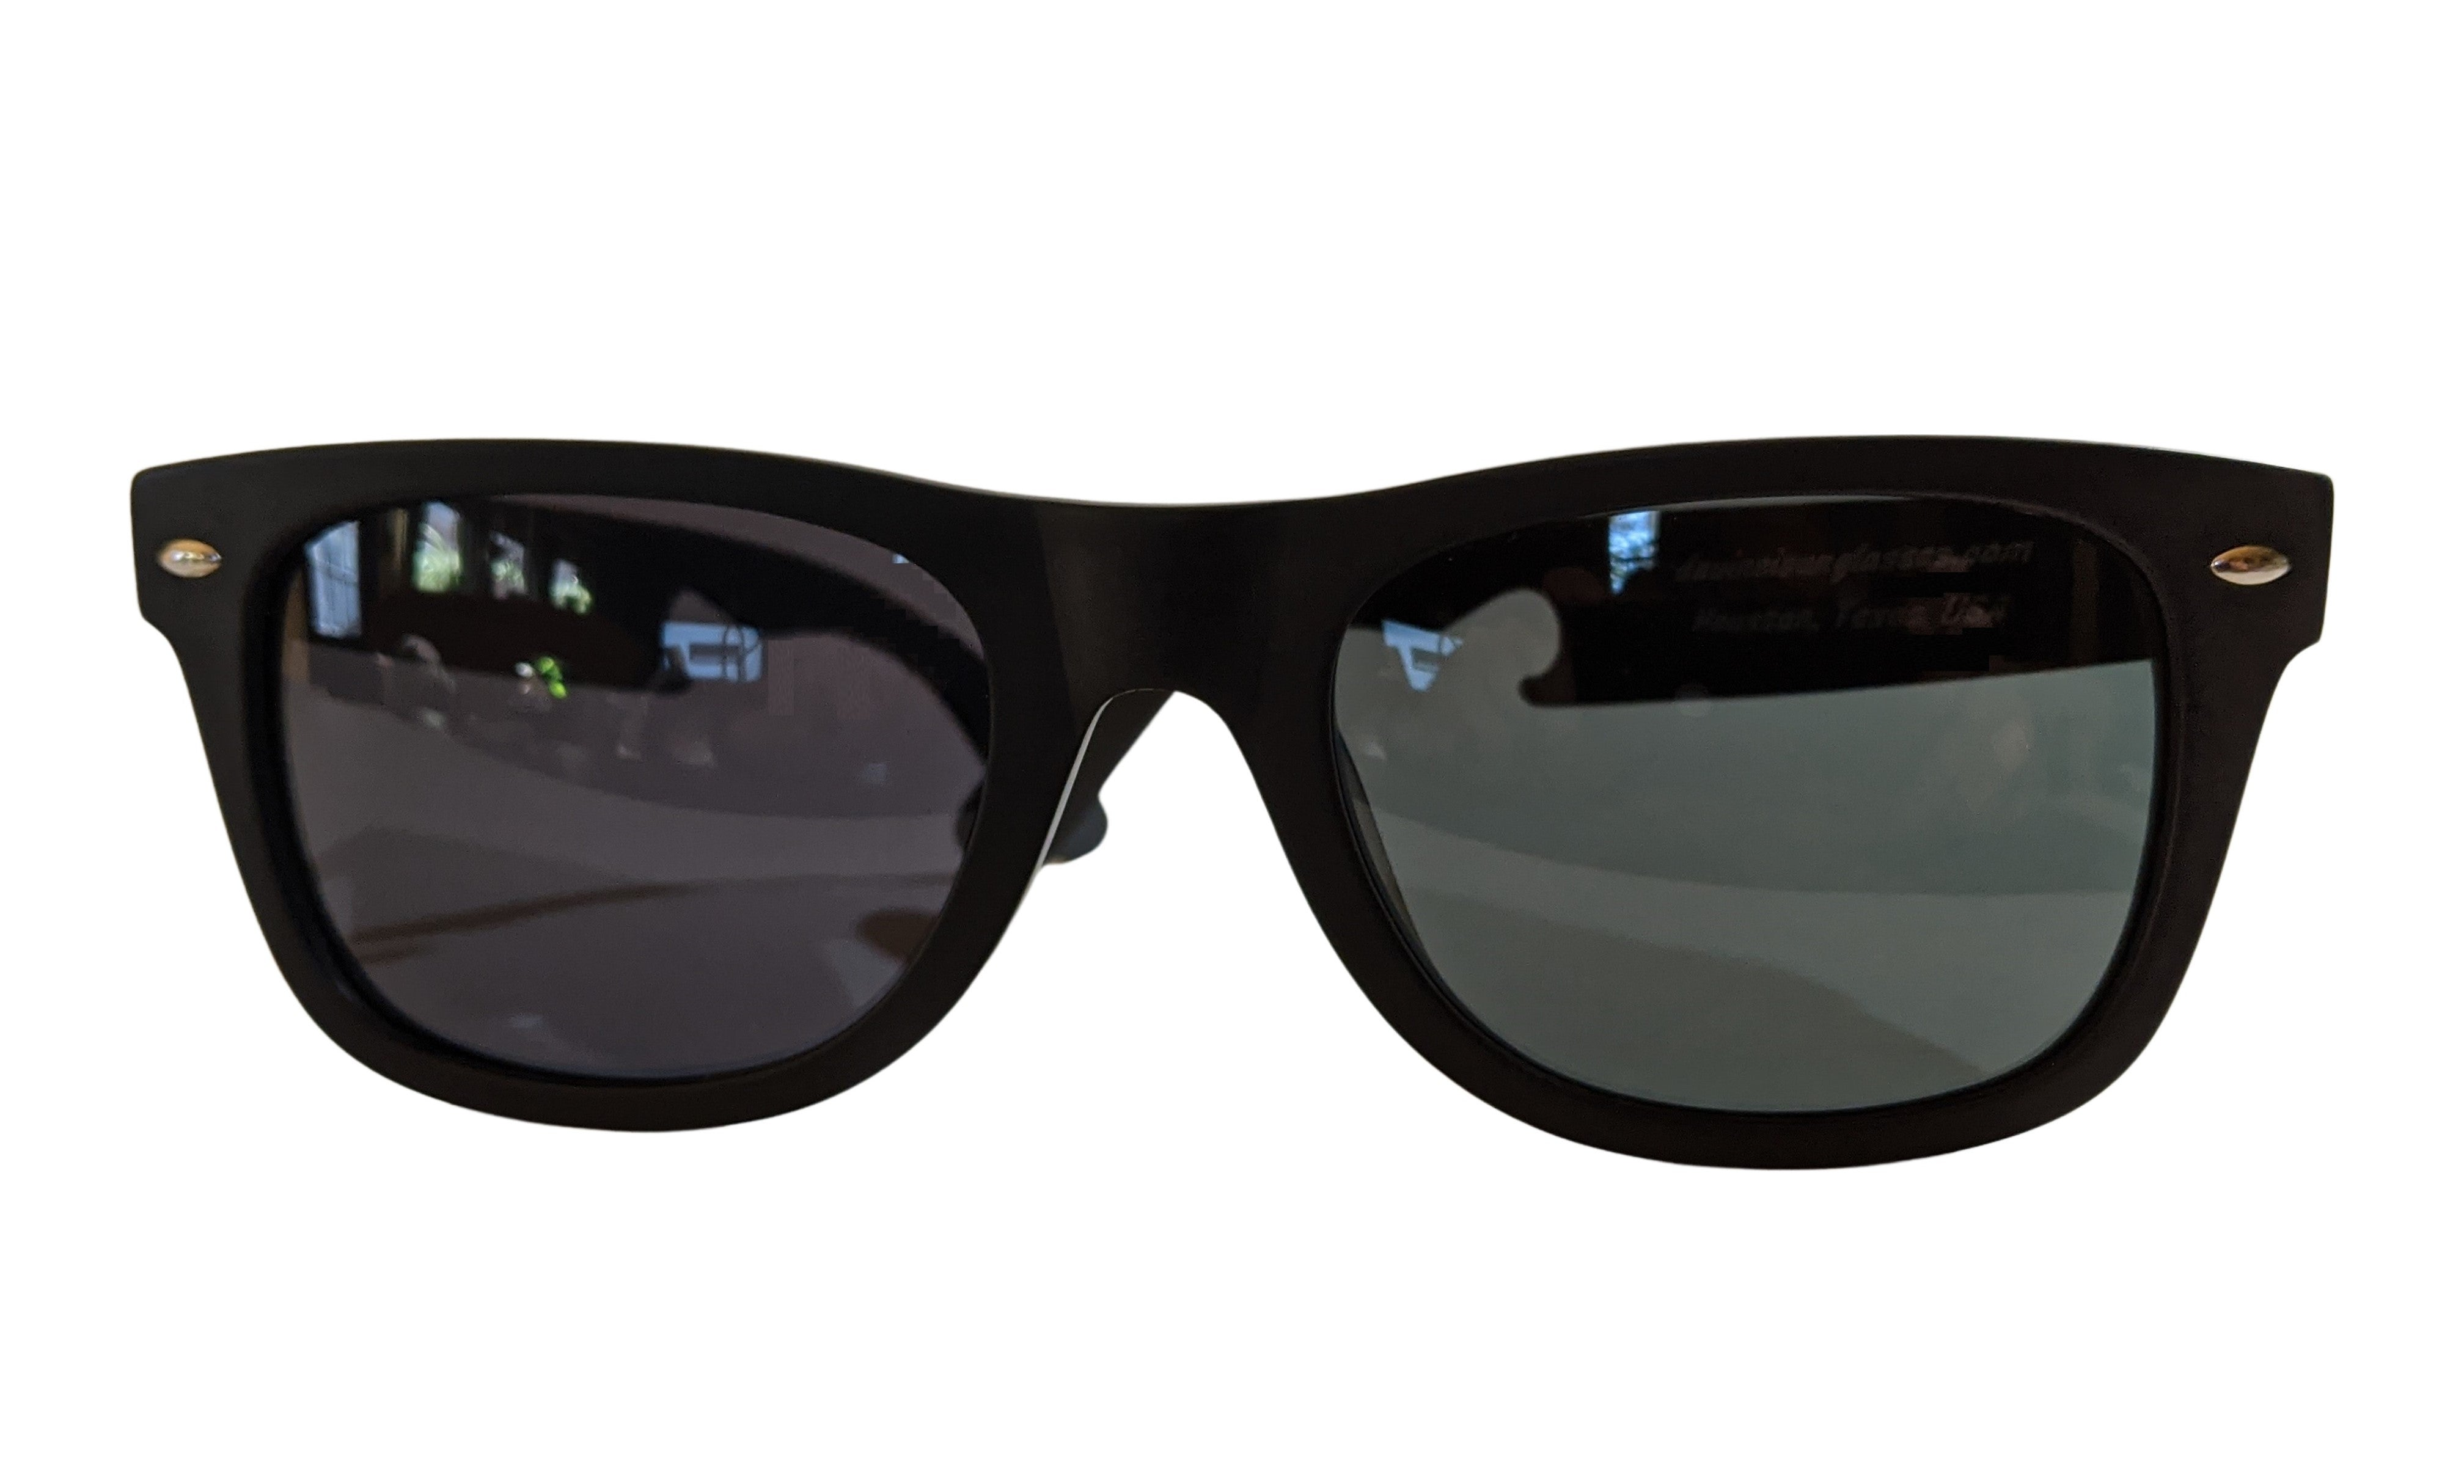 "Our Classic Retro-Style Sunglasses Feature Armor-Coated Titanium ""Bottle Opener""-Style Temples and Acetate Frames That Can Be Fitted For Prescription Lenses. They Are Extremely Light Weight and Are Very Comfortable, Whether Worn Over Your Eyes or on Top of Your Head"